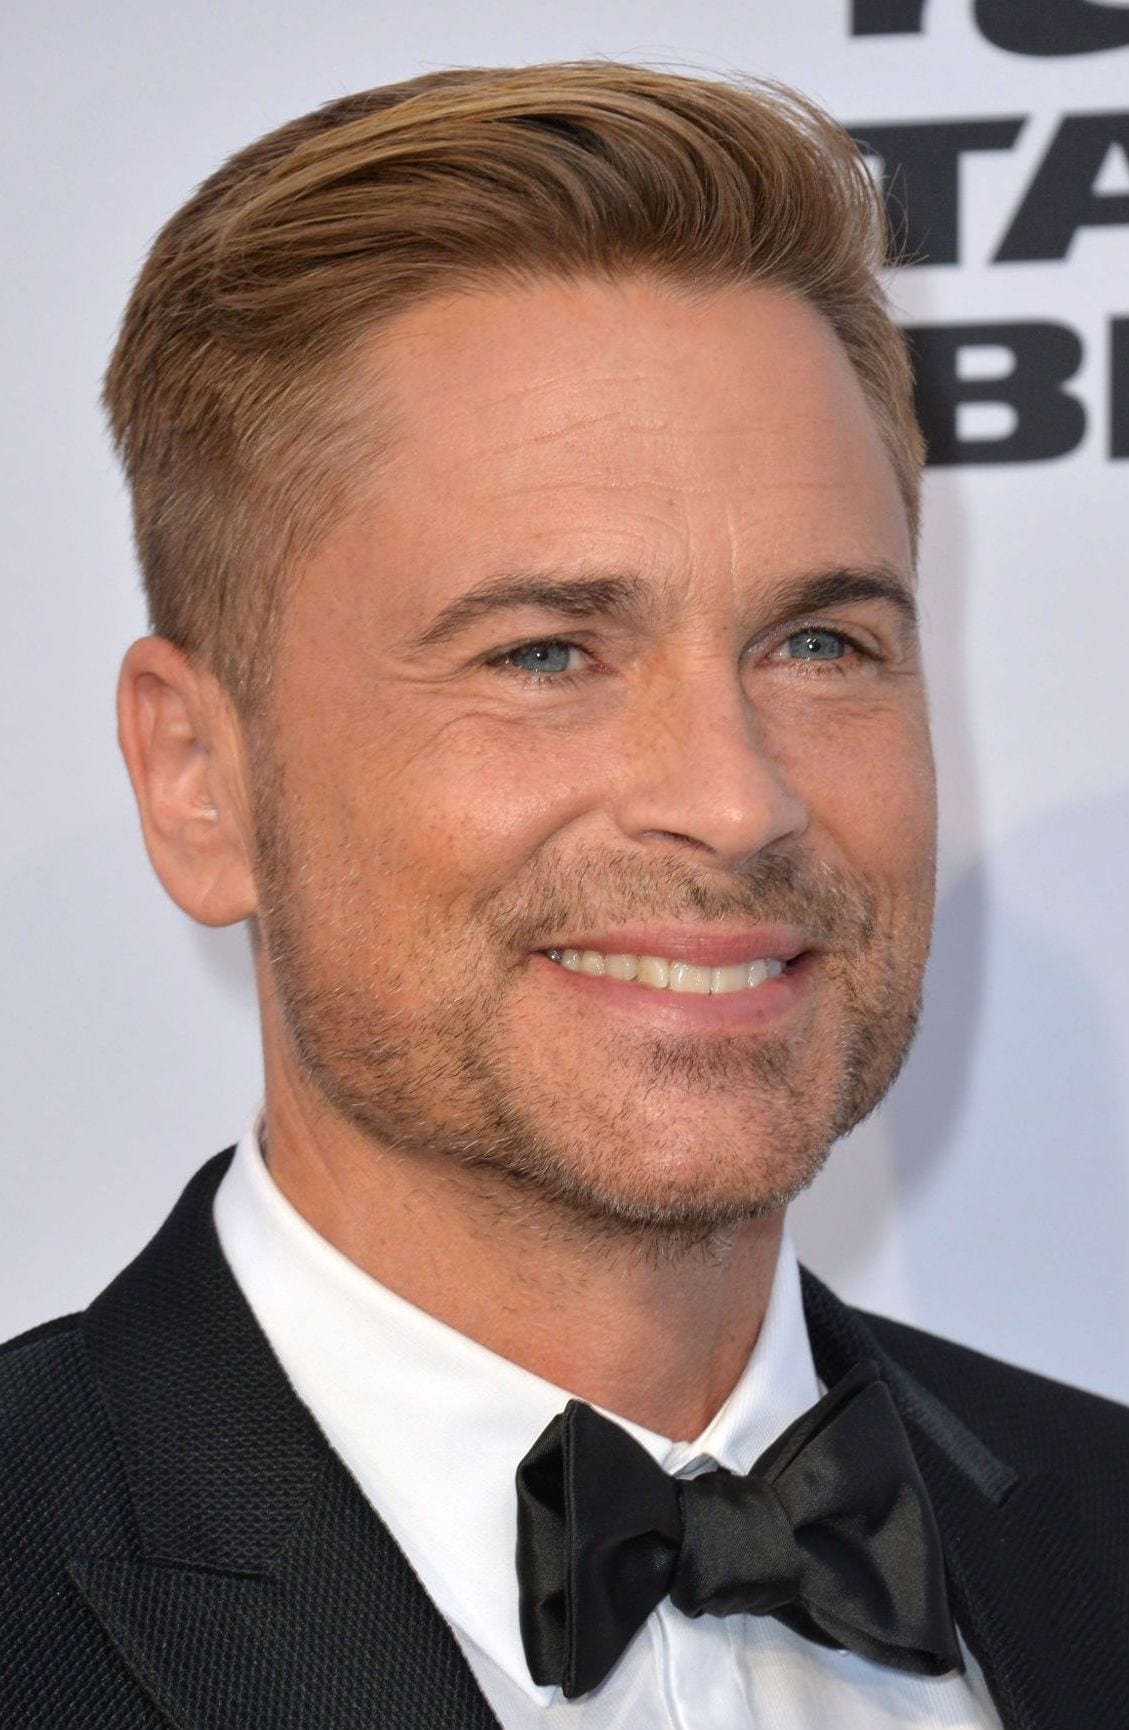 Rob Lowe comb over hairstyle